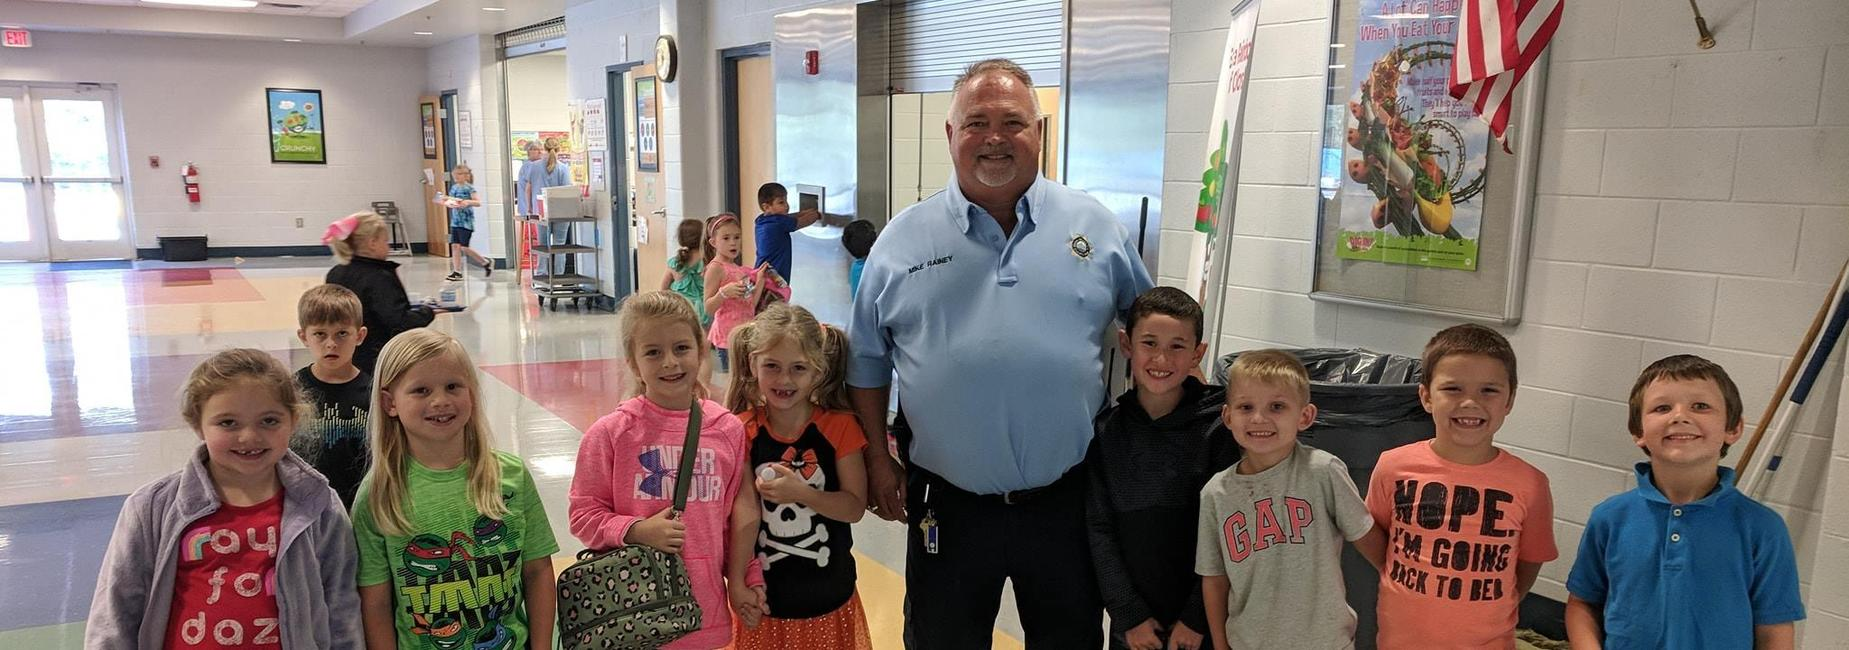 Officer Rainey and Elementary Students